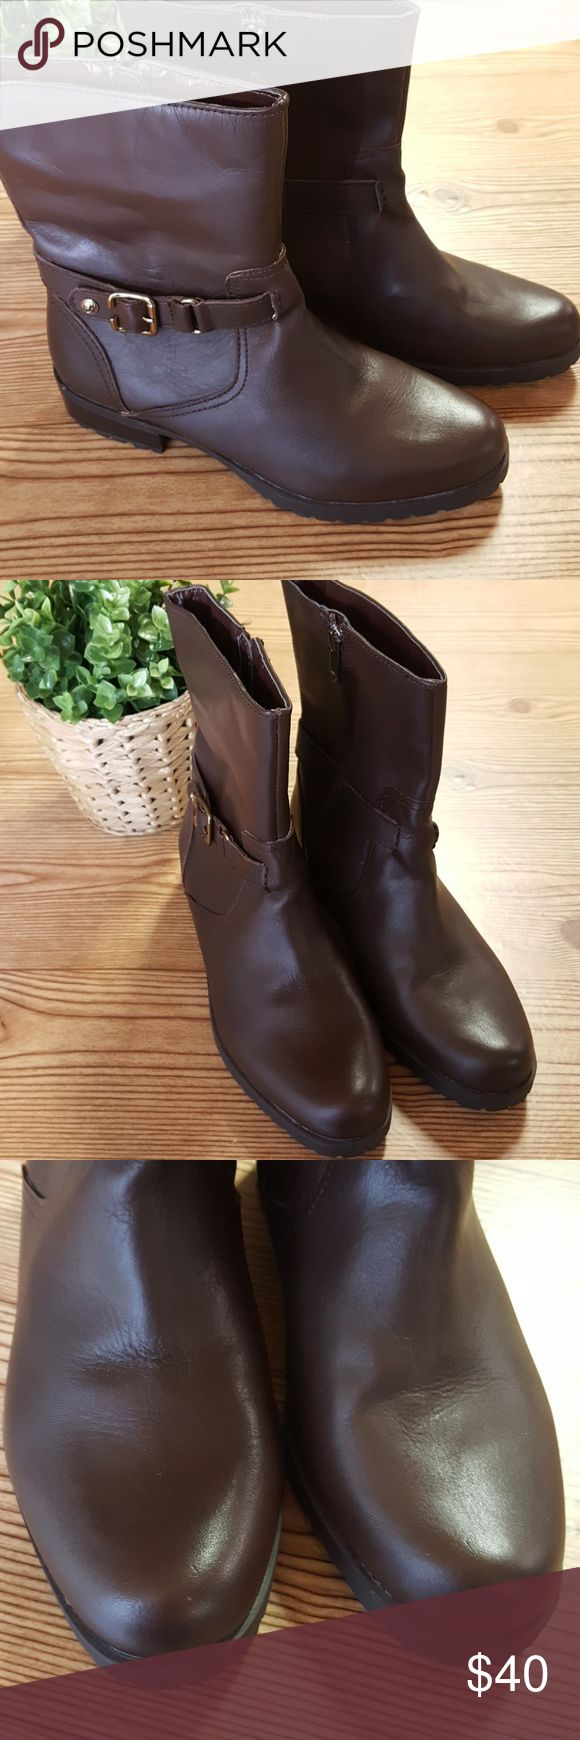 Anne Klein iFlex Leather Ankle Boots 9M Brown leather ankle boots from Anne Klein. In excellent used condition. Anne Klein Shoes Ankle Boots & Booties